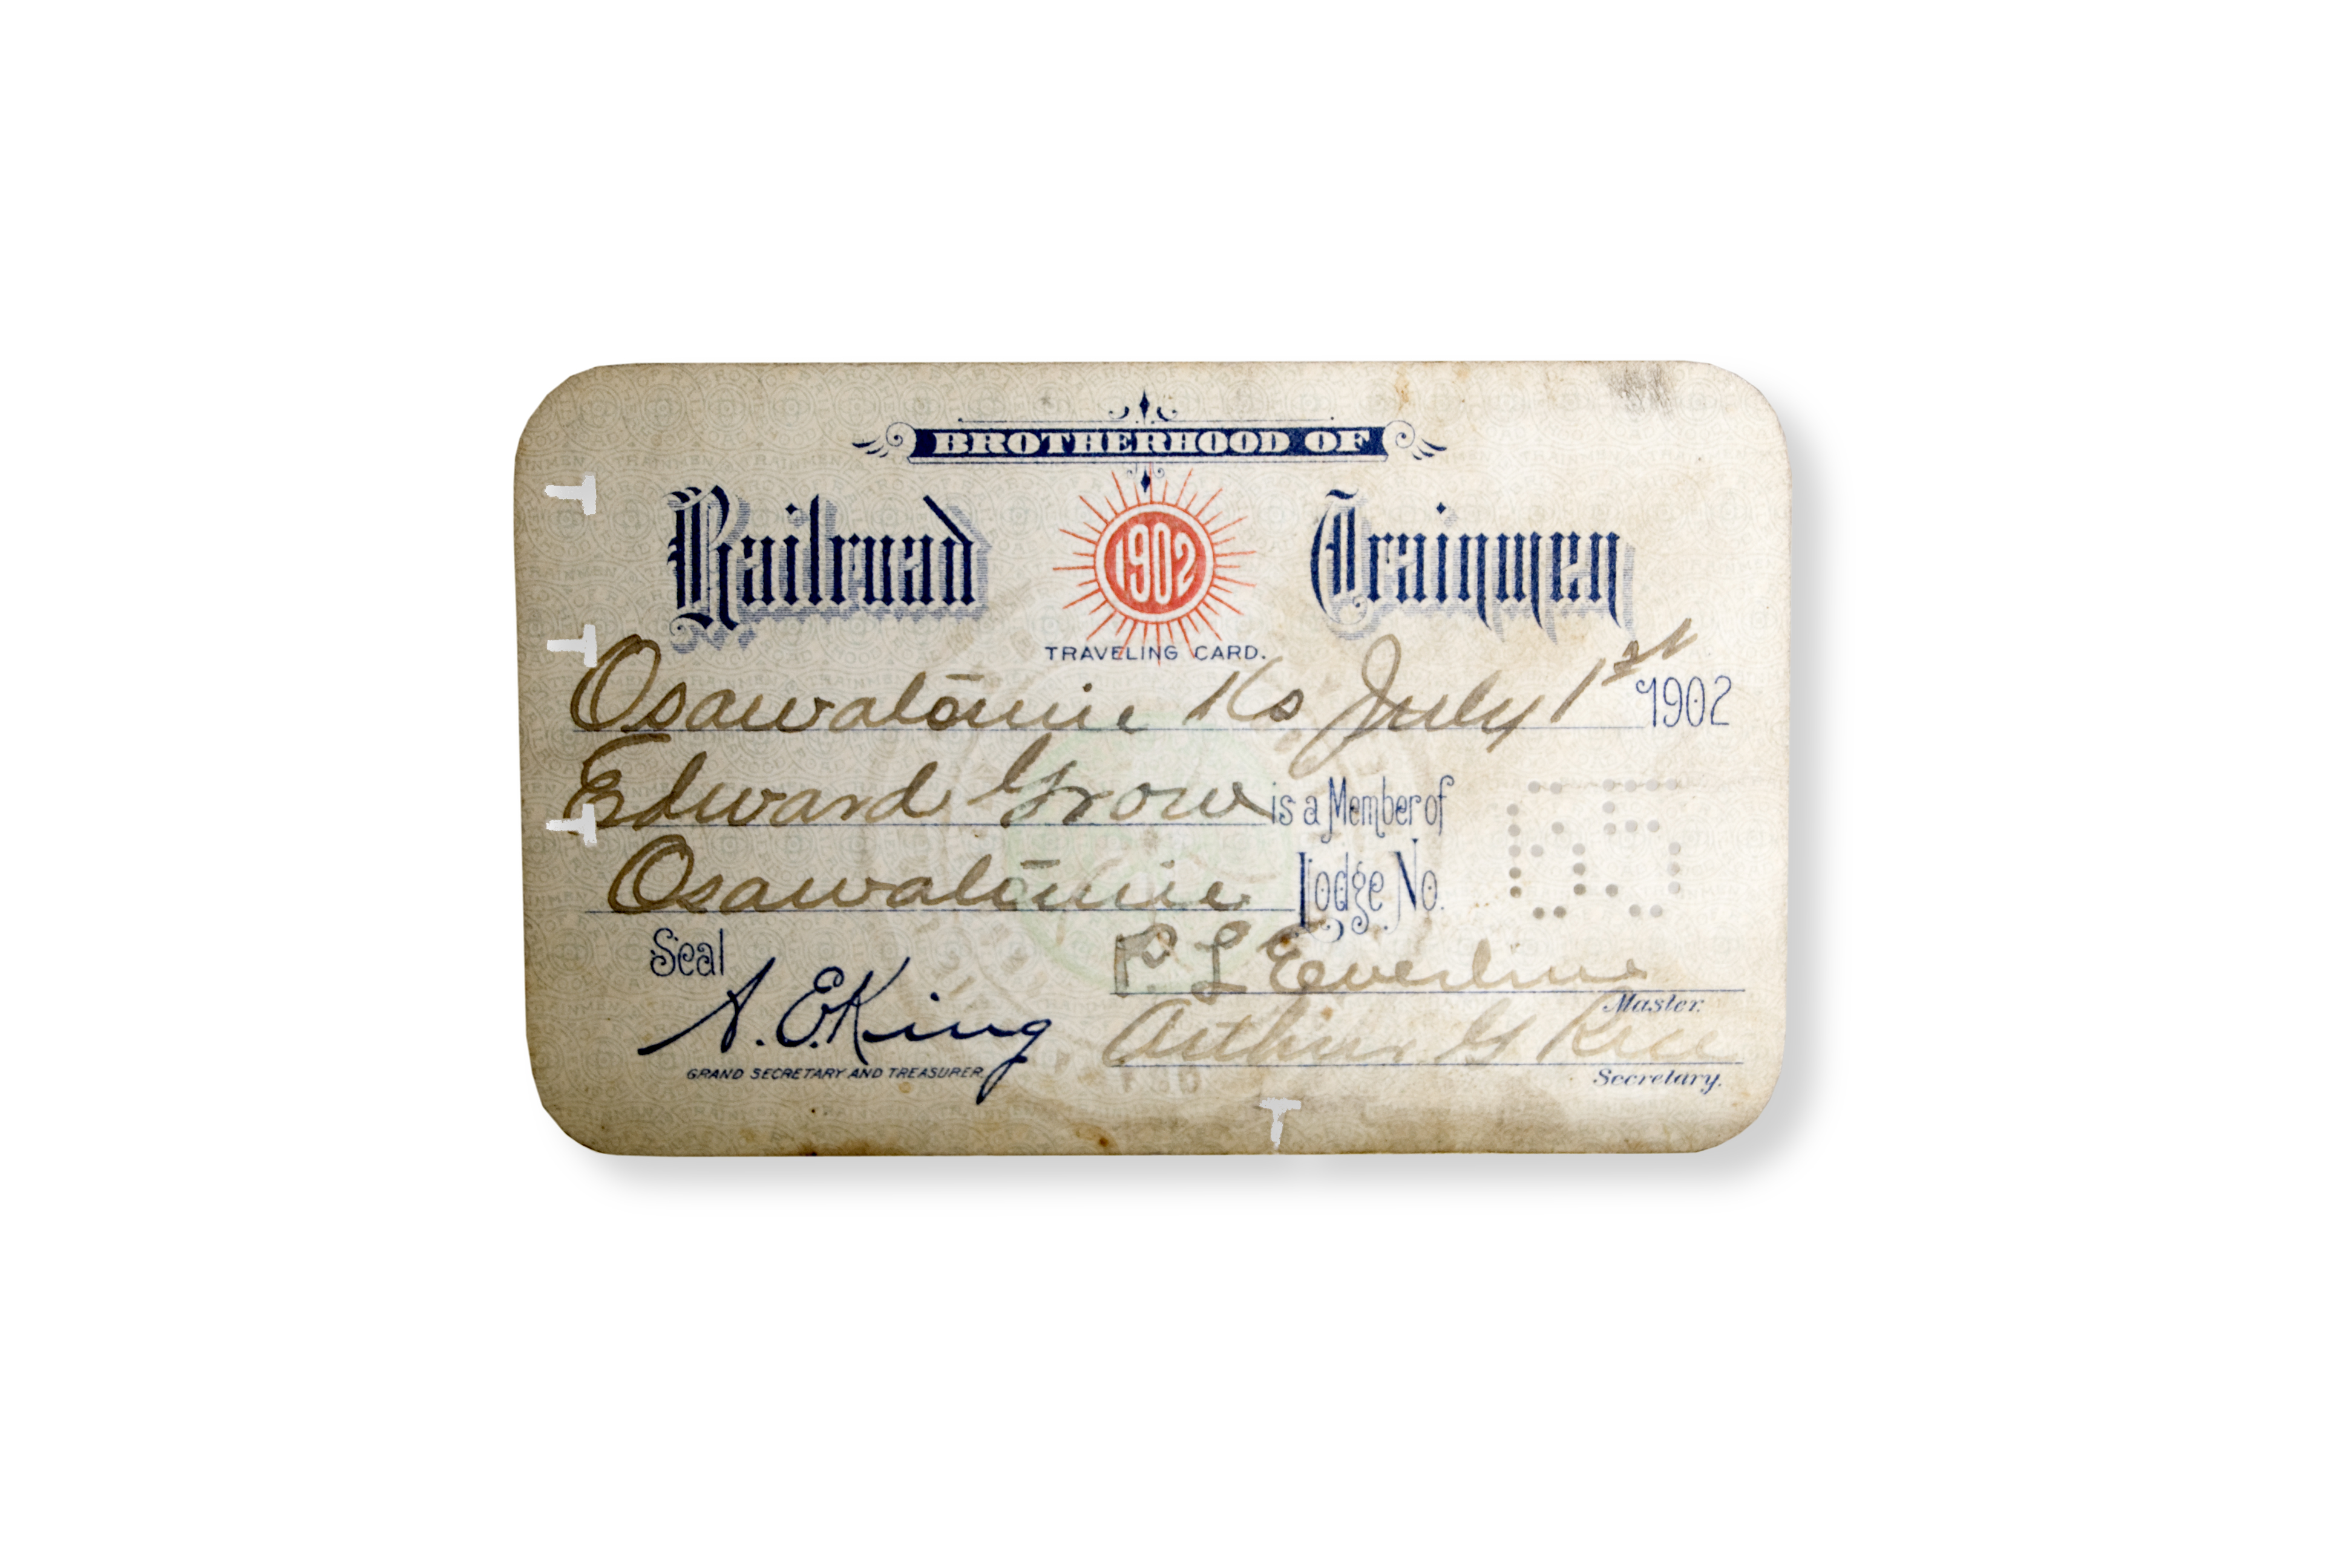 1902 railroad pass